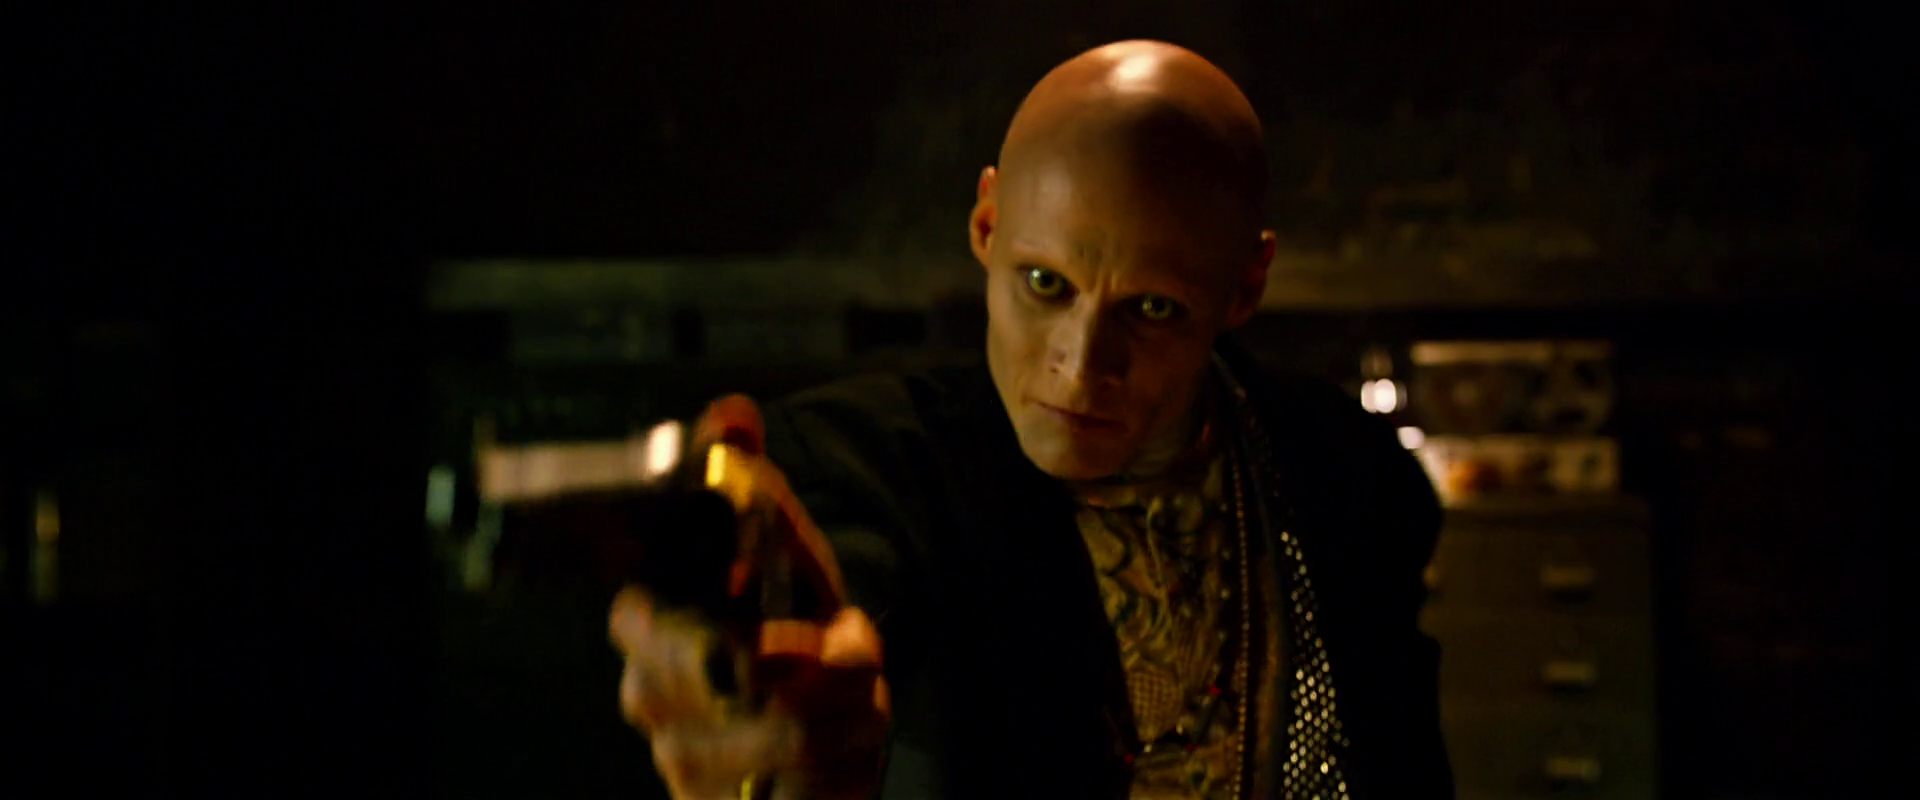 Caliban | X-Men Movies Wiki | Fandom powered by Wikia X Men Days Of Future Past Photos